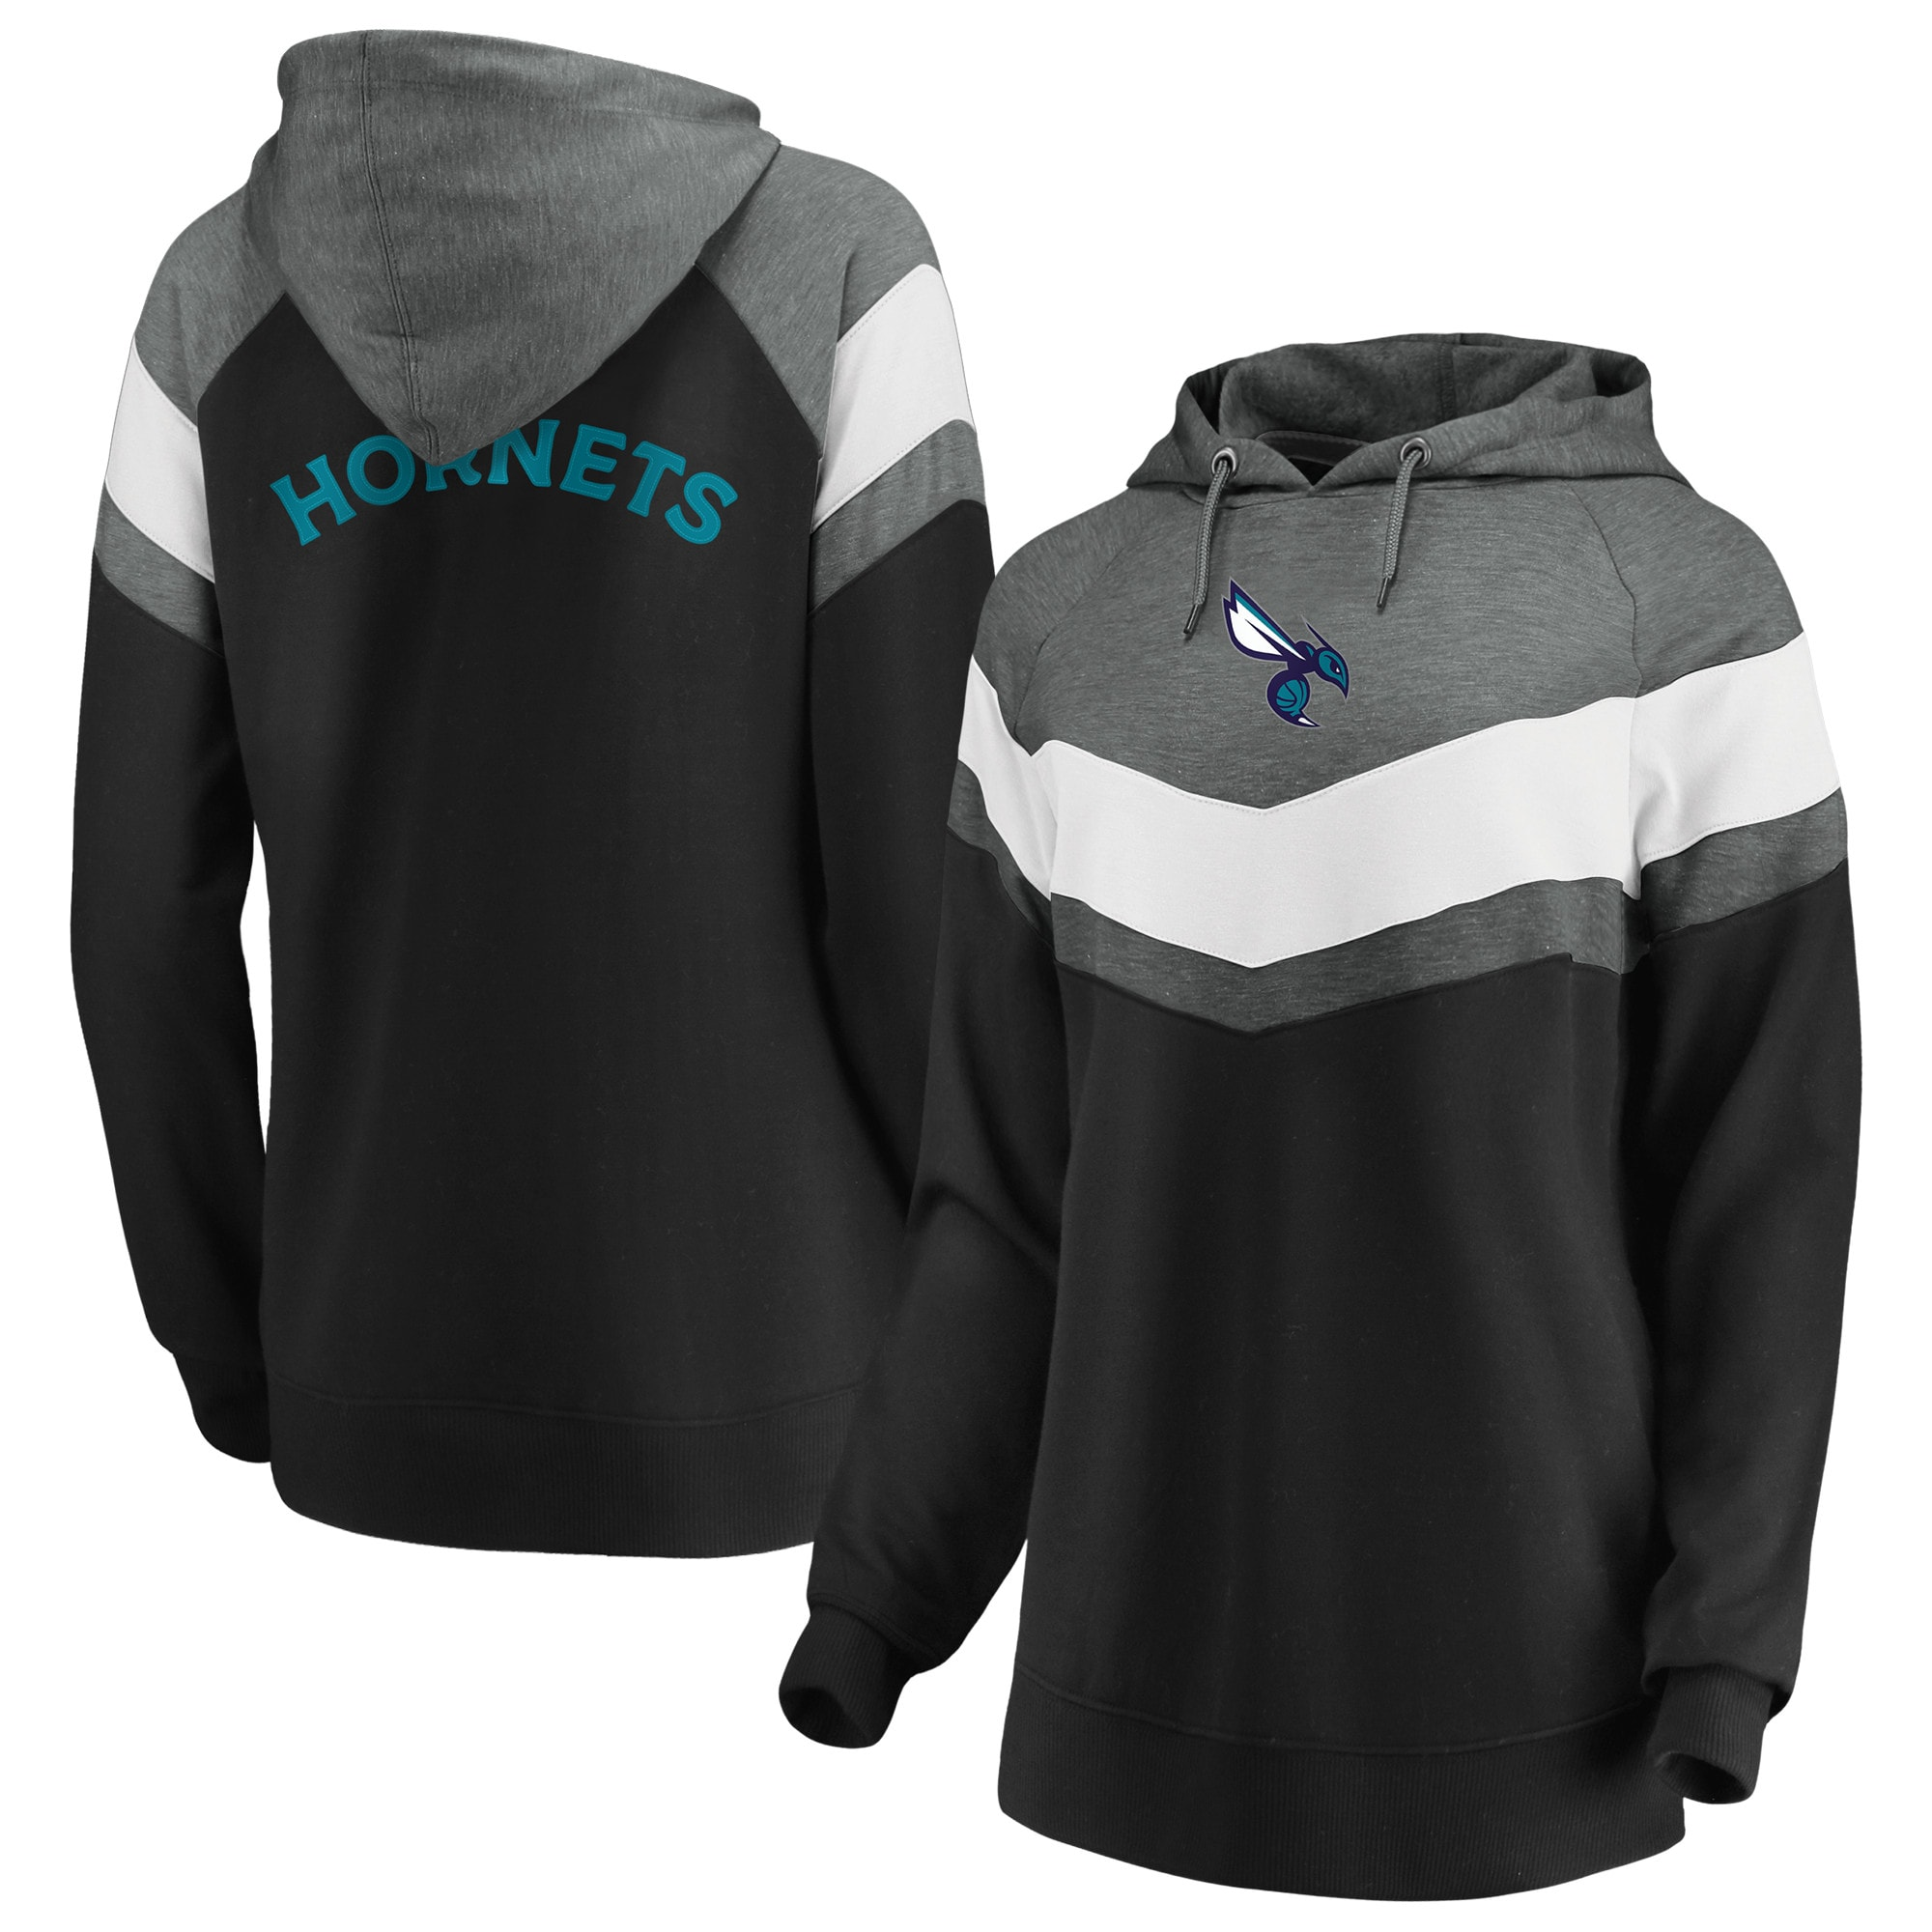 Charlotte Hornets Fanatics Branded Women's True Classics Go All Out Chevron Pullover Hoodie - Gray/Black